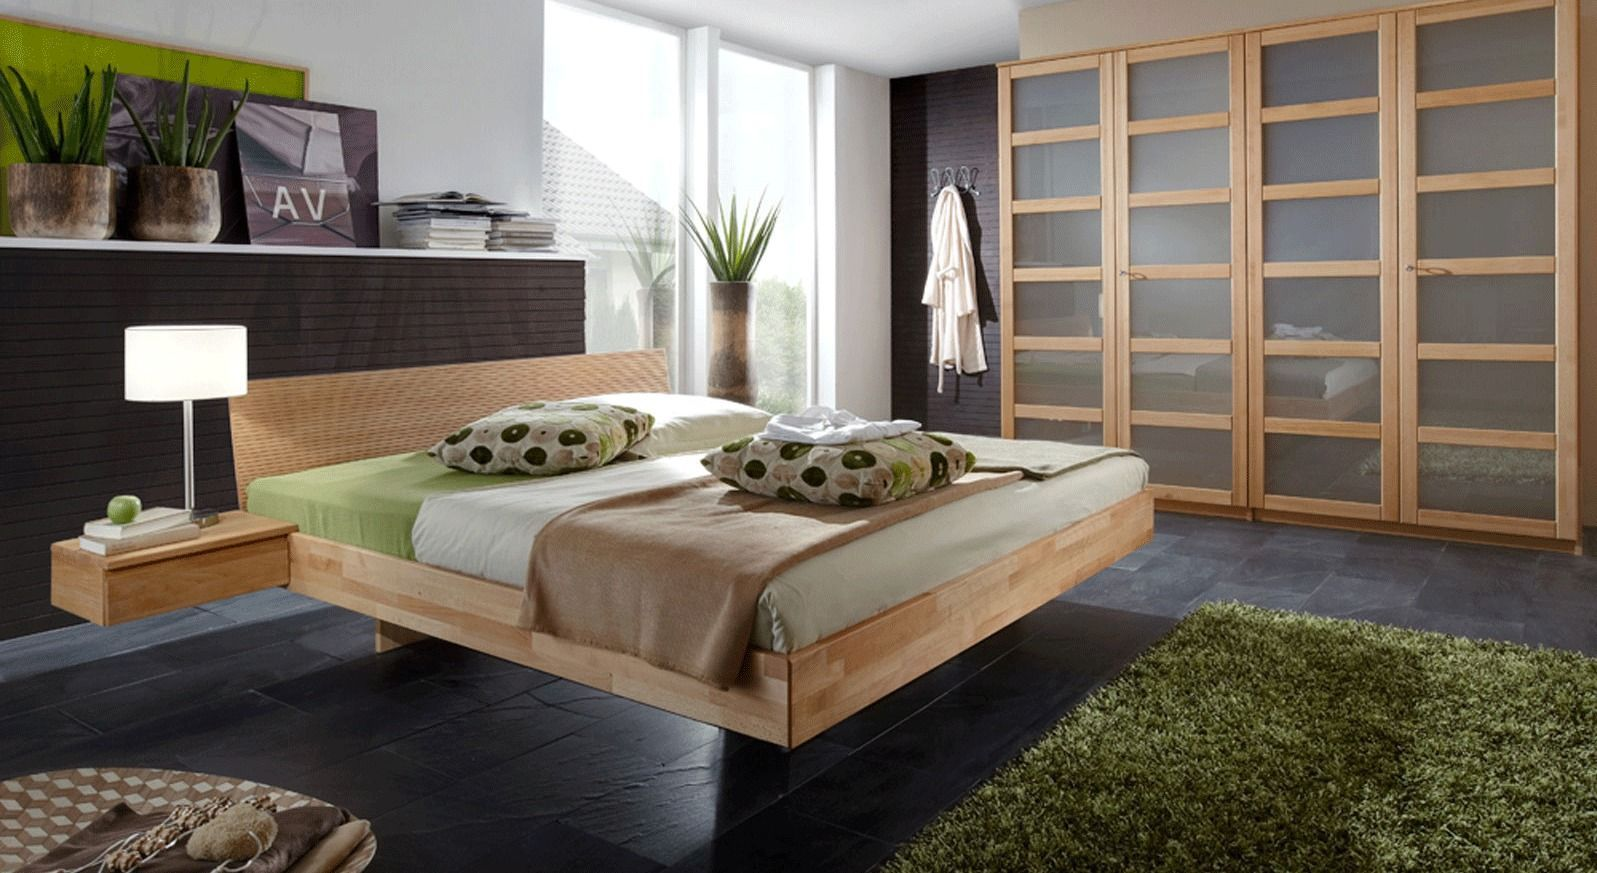 massivholzbett in z b 180x200 cm aus buche tacoma. Black Bedroom Furniture Sets. Home Design Ideas